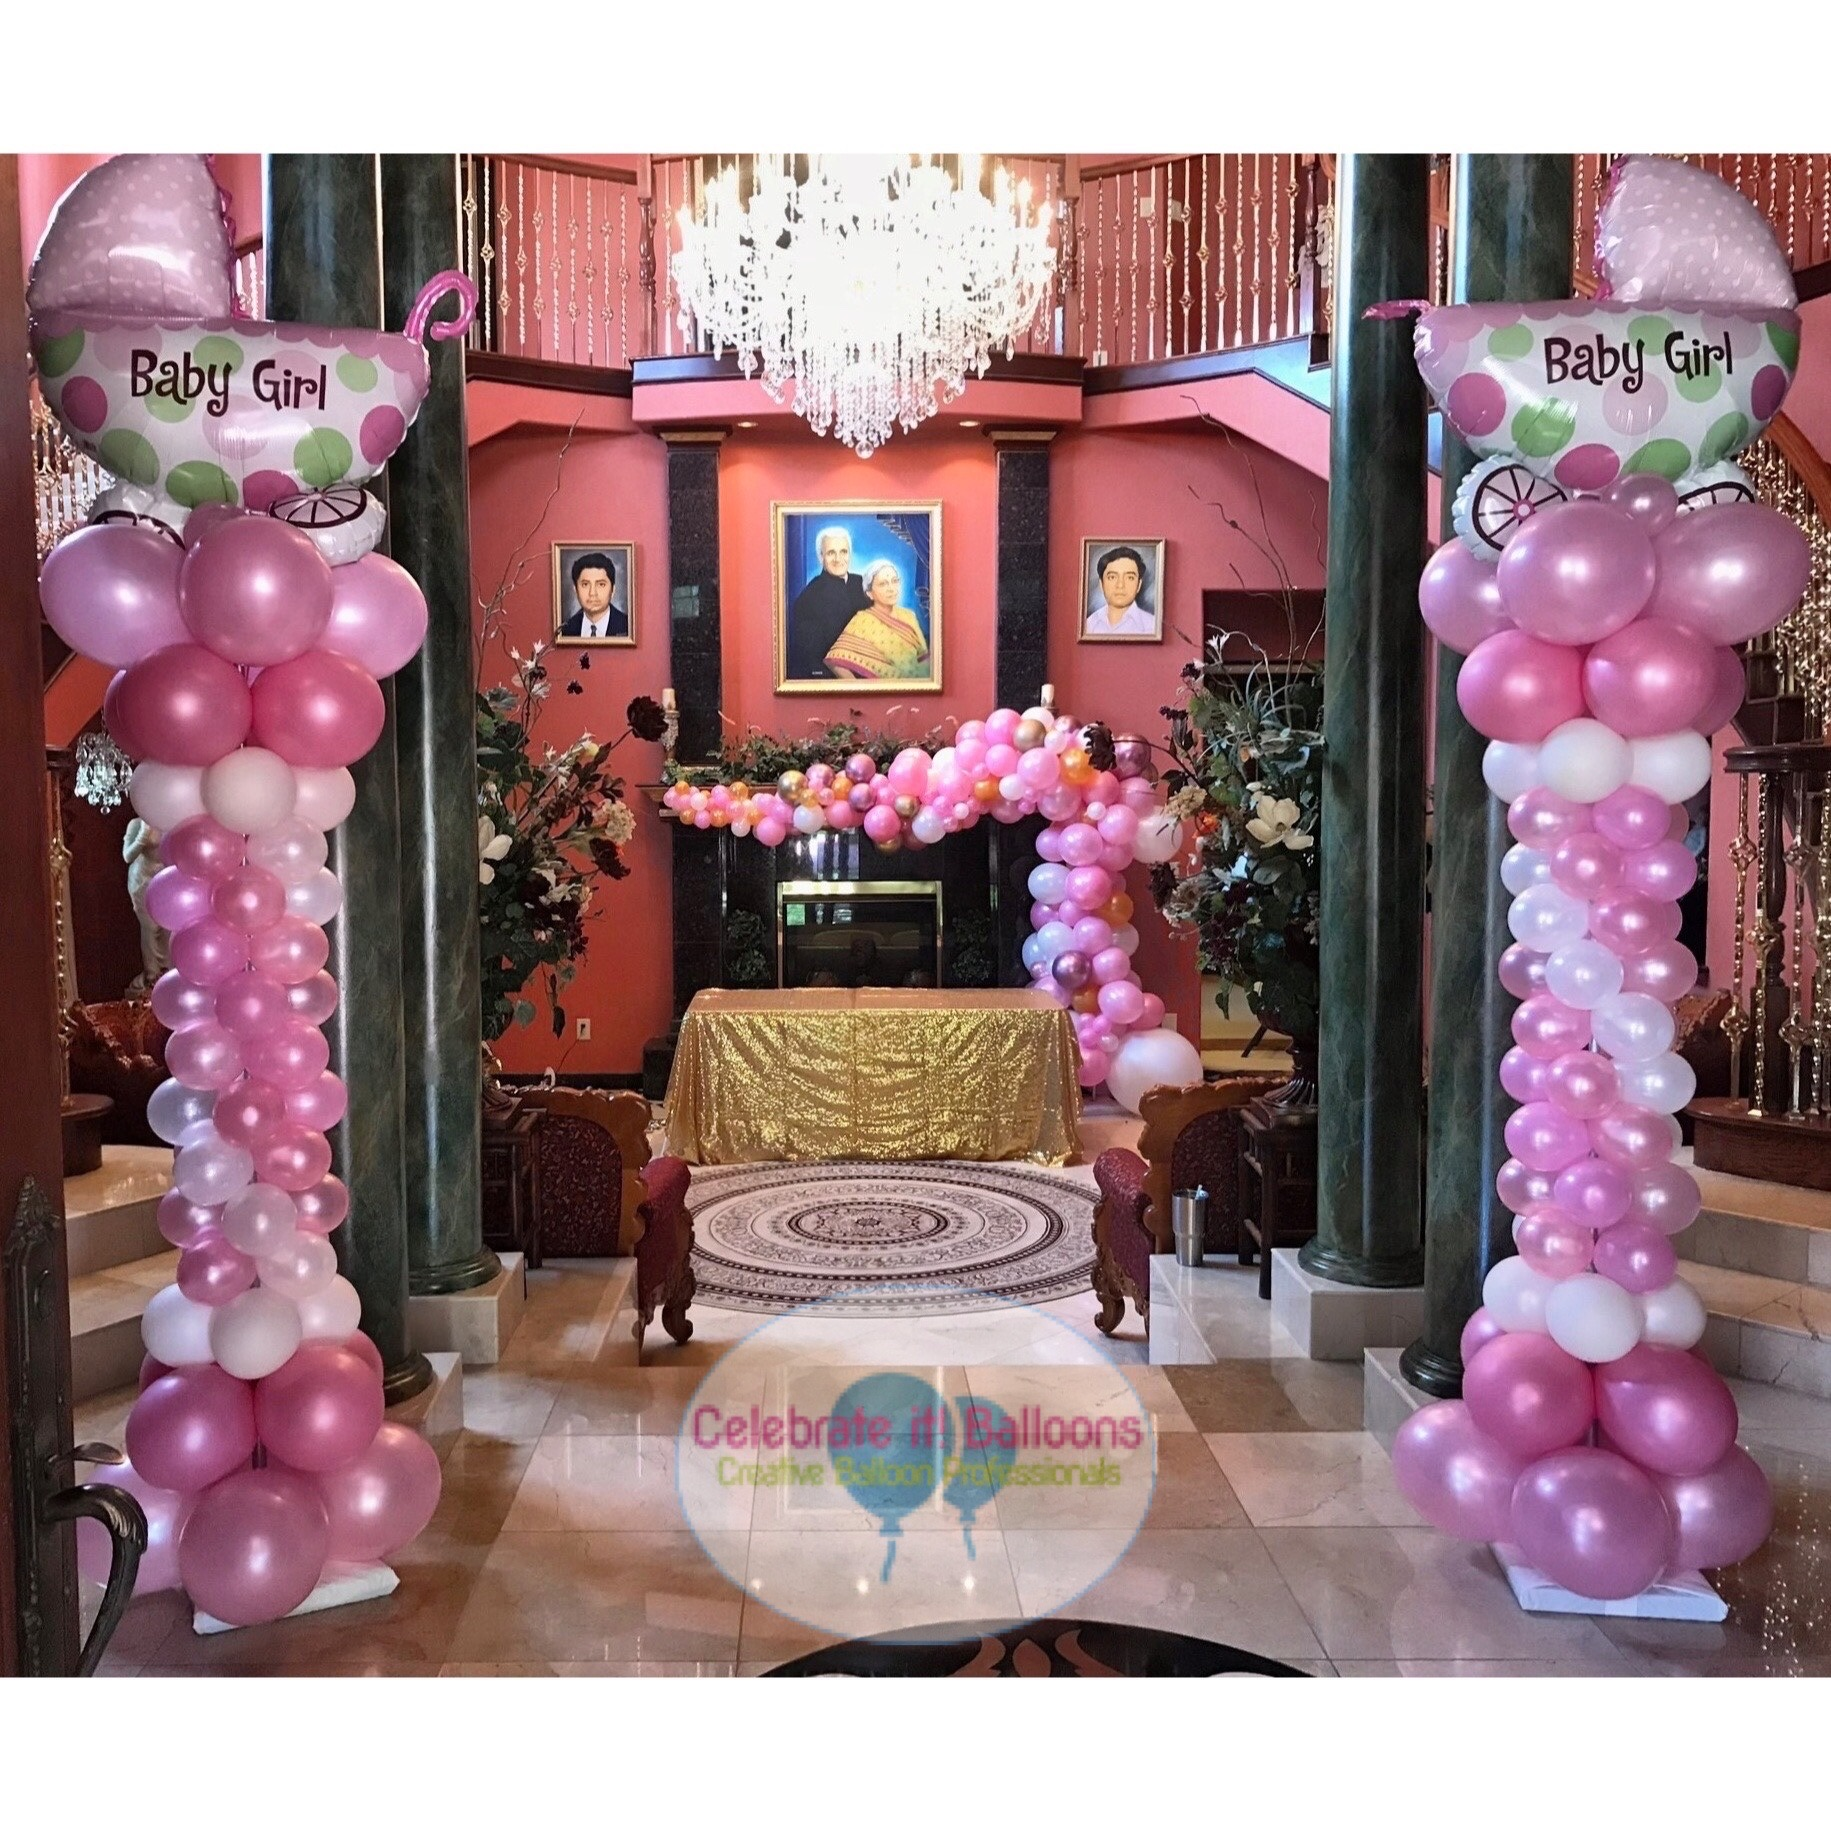 Baby Shower balloon columns in pink and white with balloon garland over fireplace.